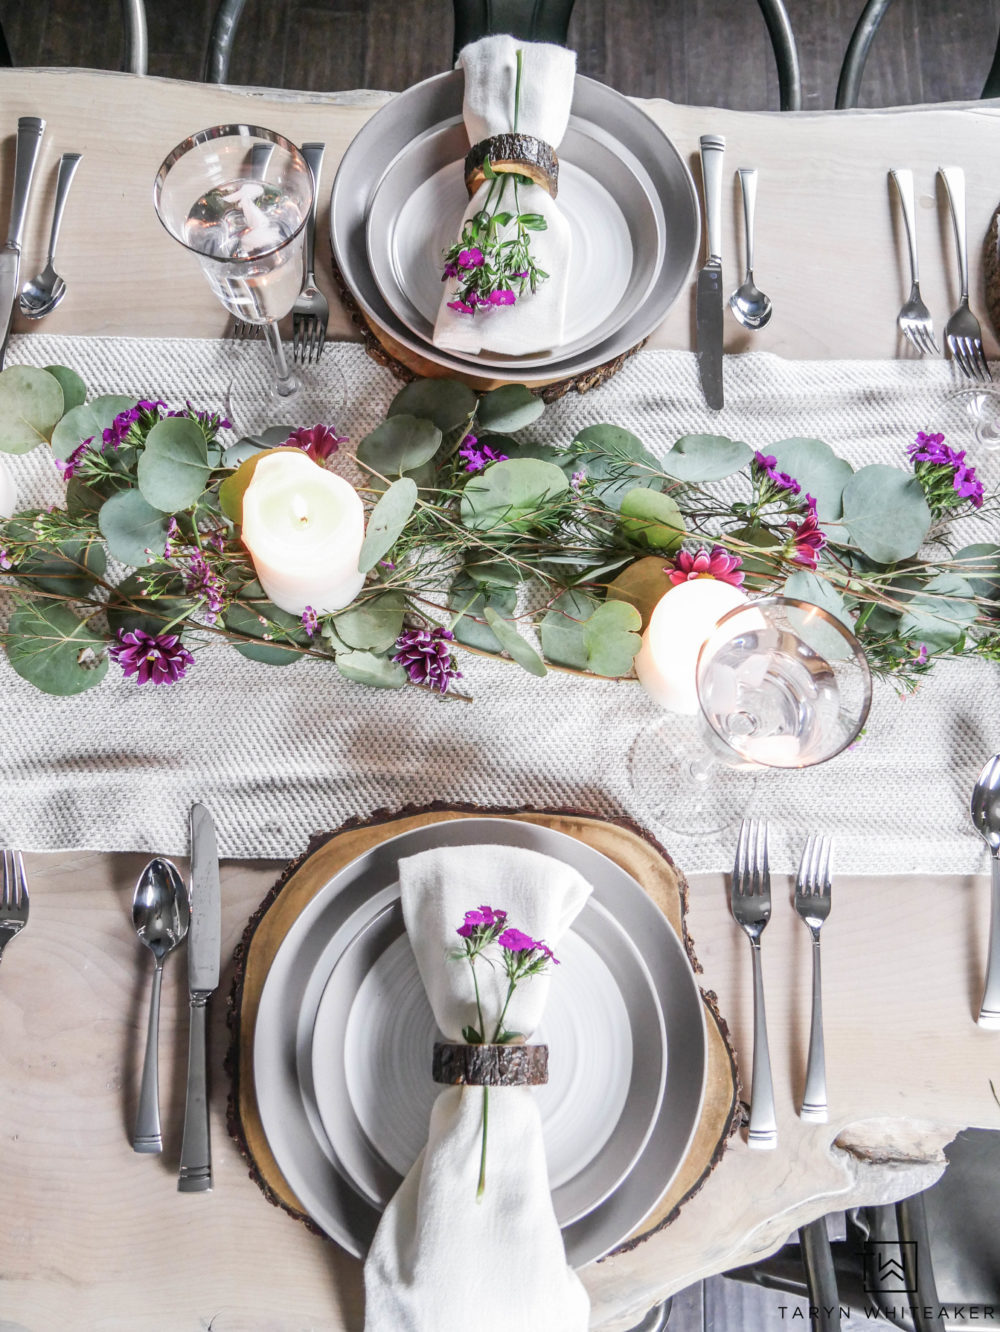 Create this romantic and fresh Floral Valentine's Day Table using a mixture of whimsical greenery and pops of pink flowers. Perfect for the whole family or a galentine's day gathering!